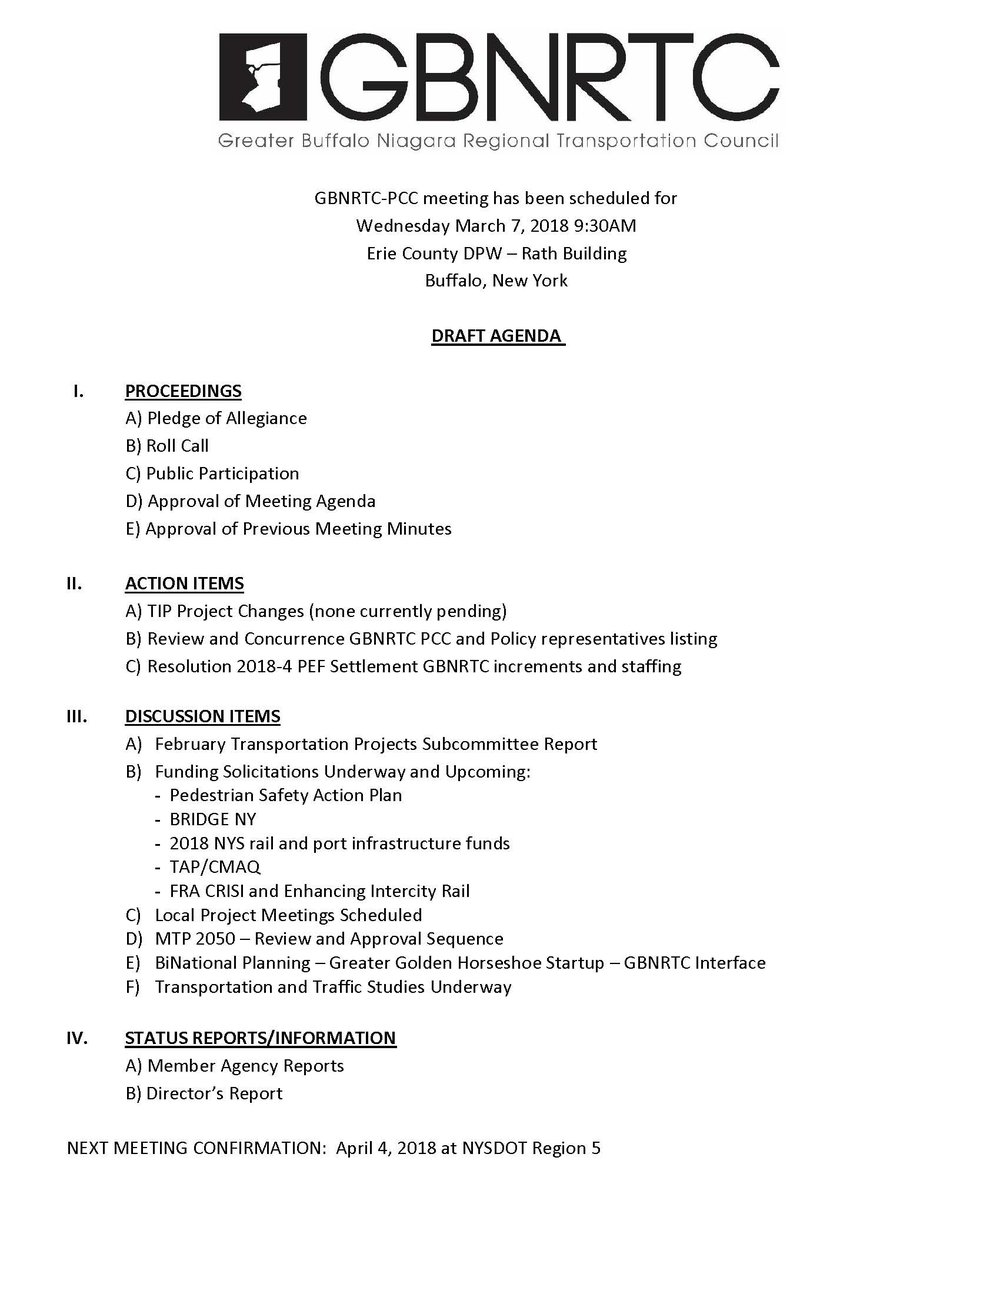 GBNRTC PCC Meeting Draft Agenda March 7th, 2018